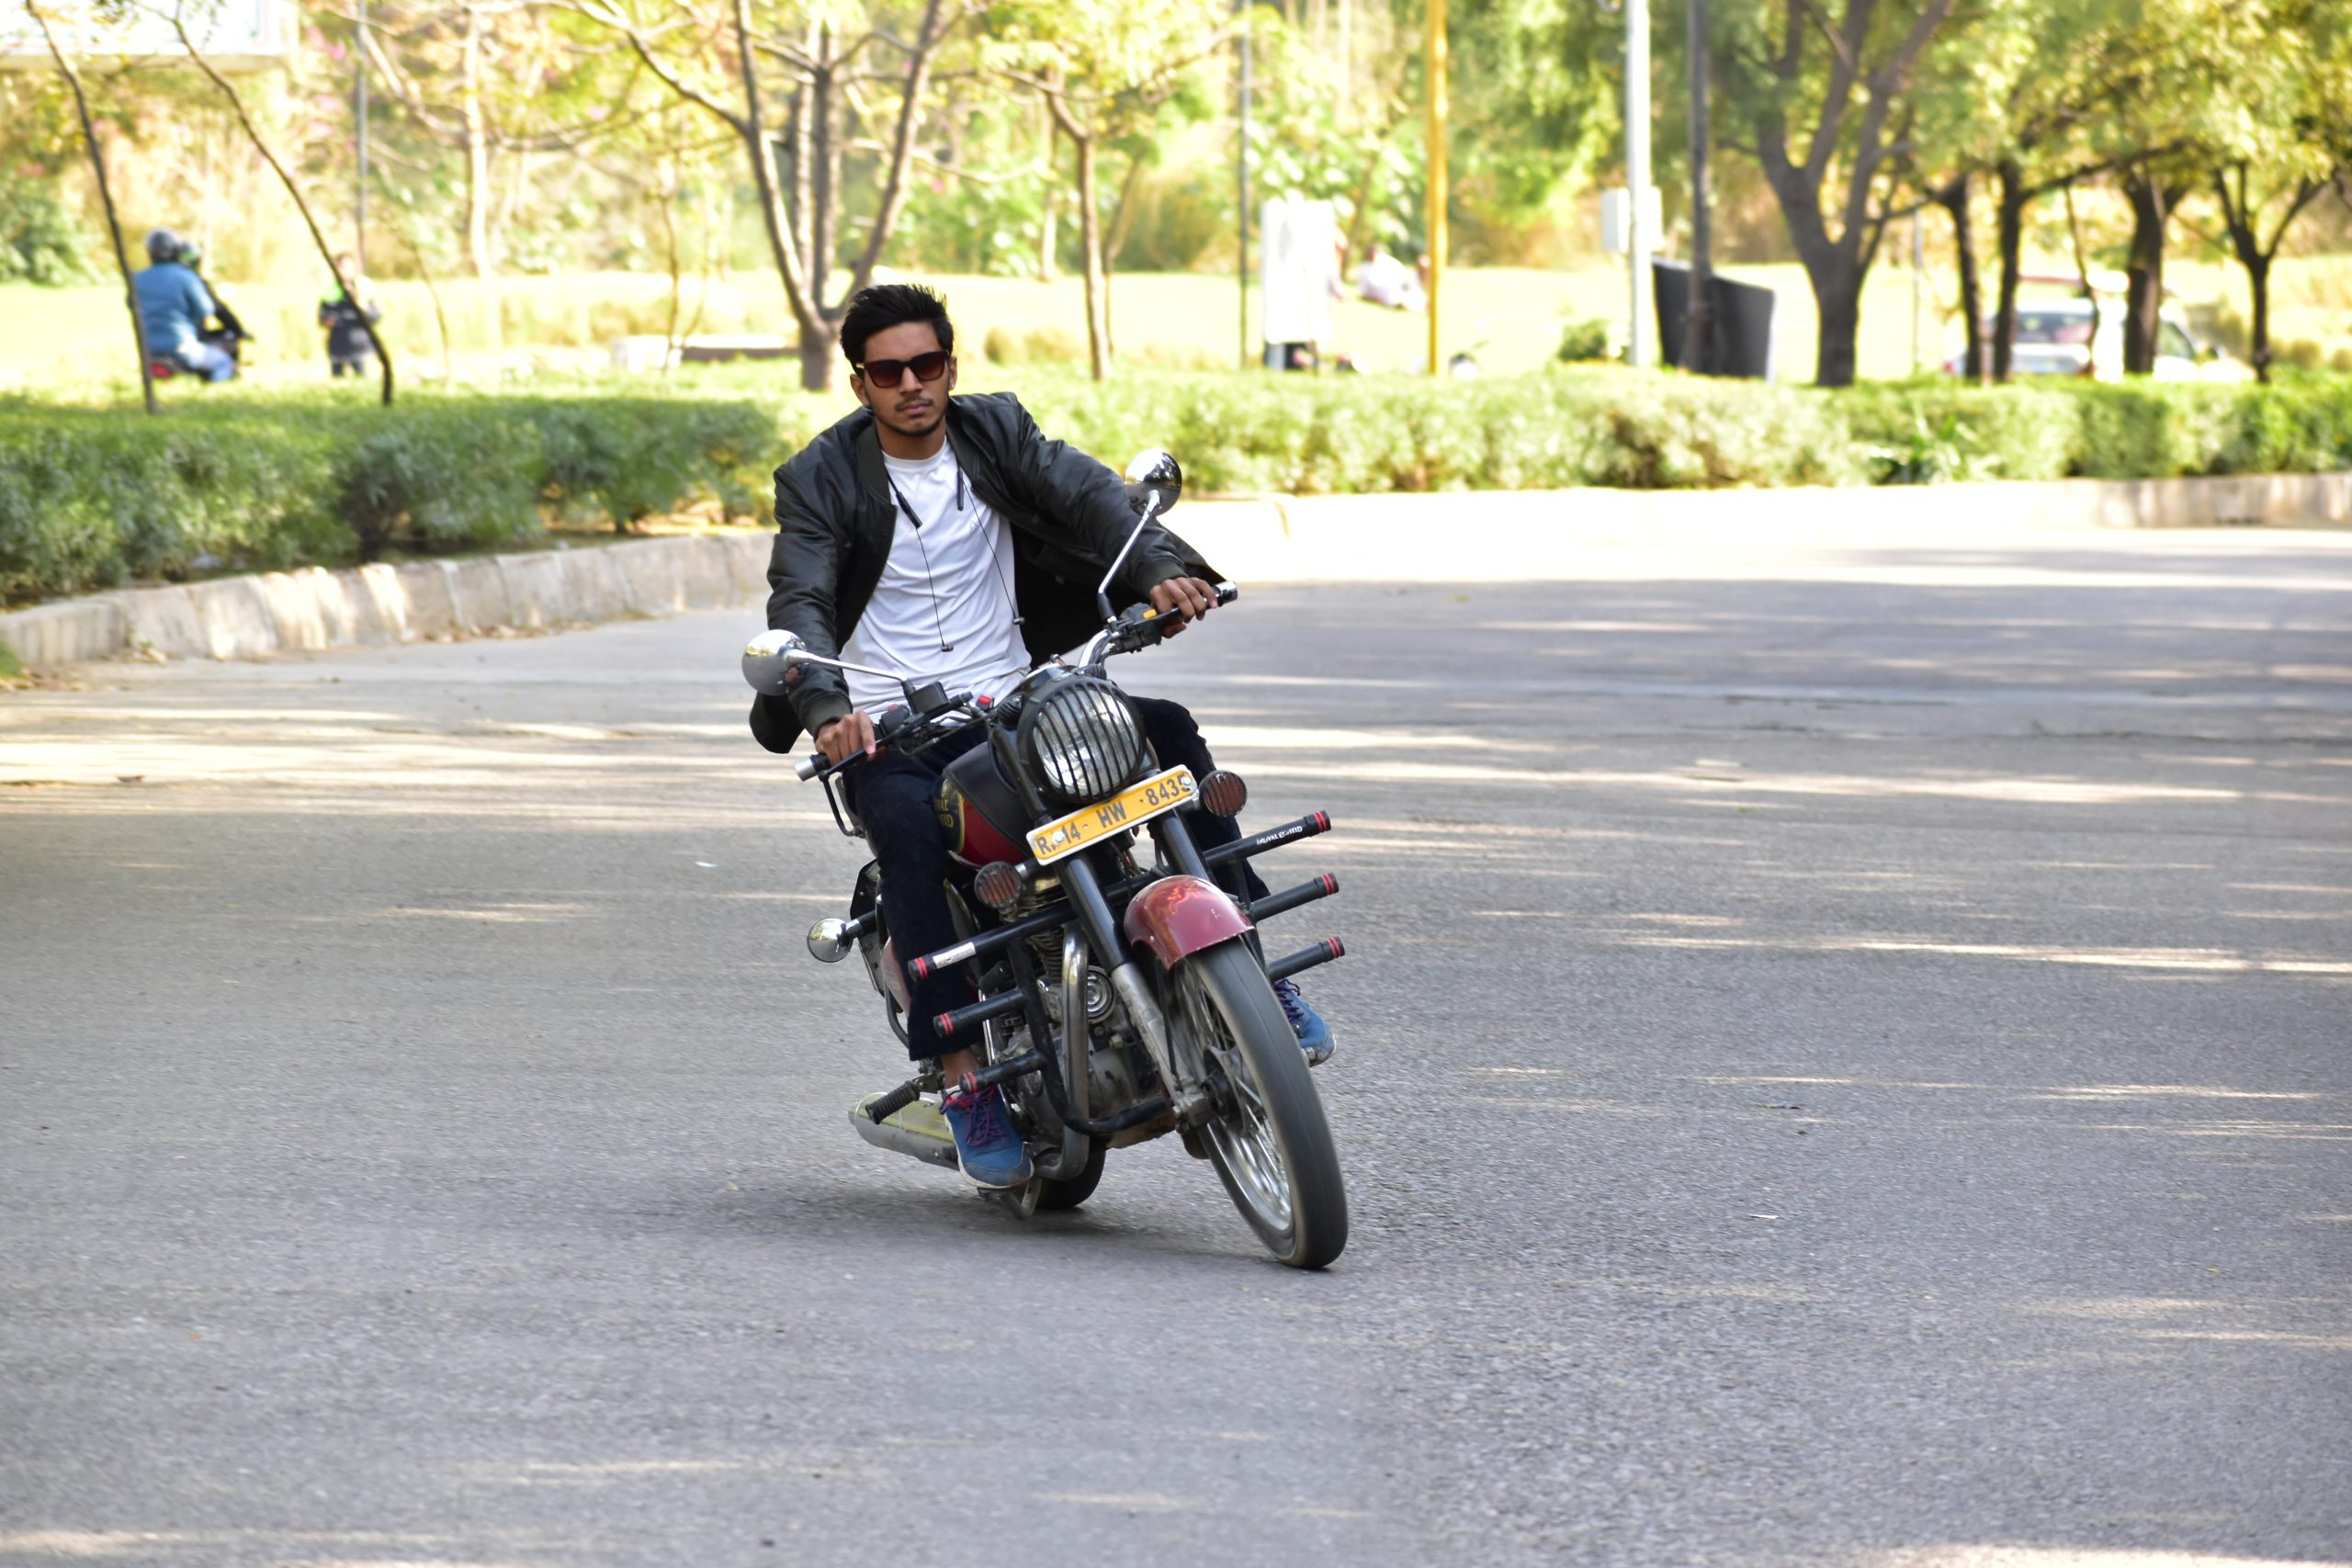 Boy riding Royal Enfield